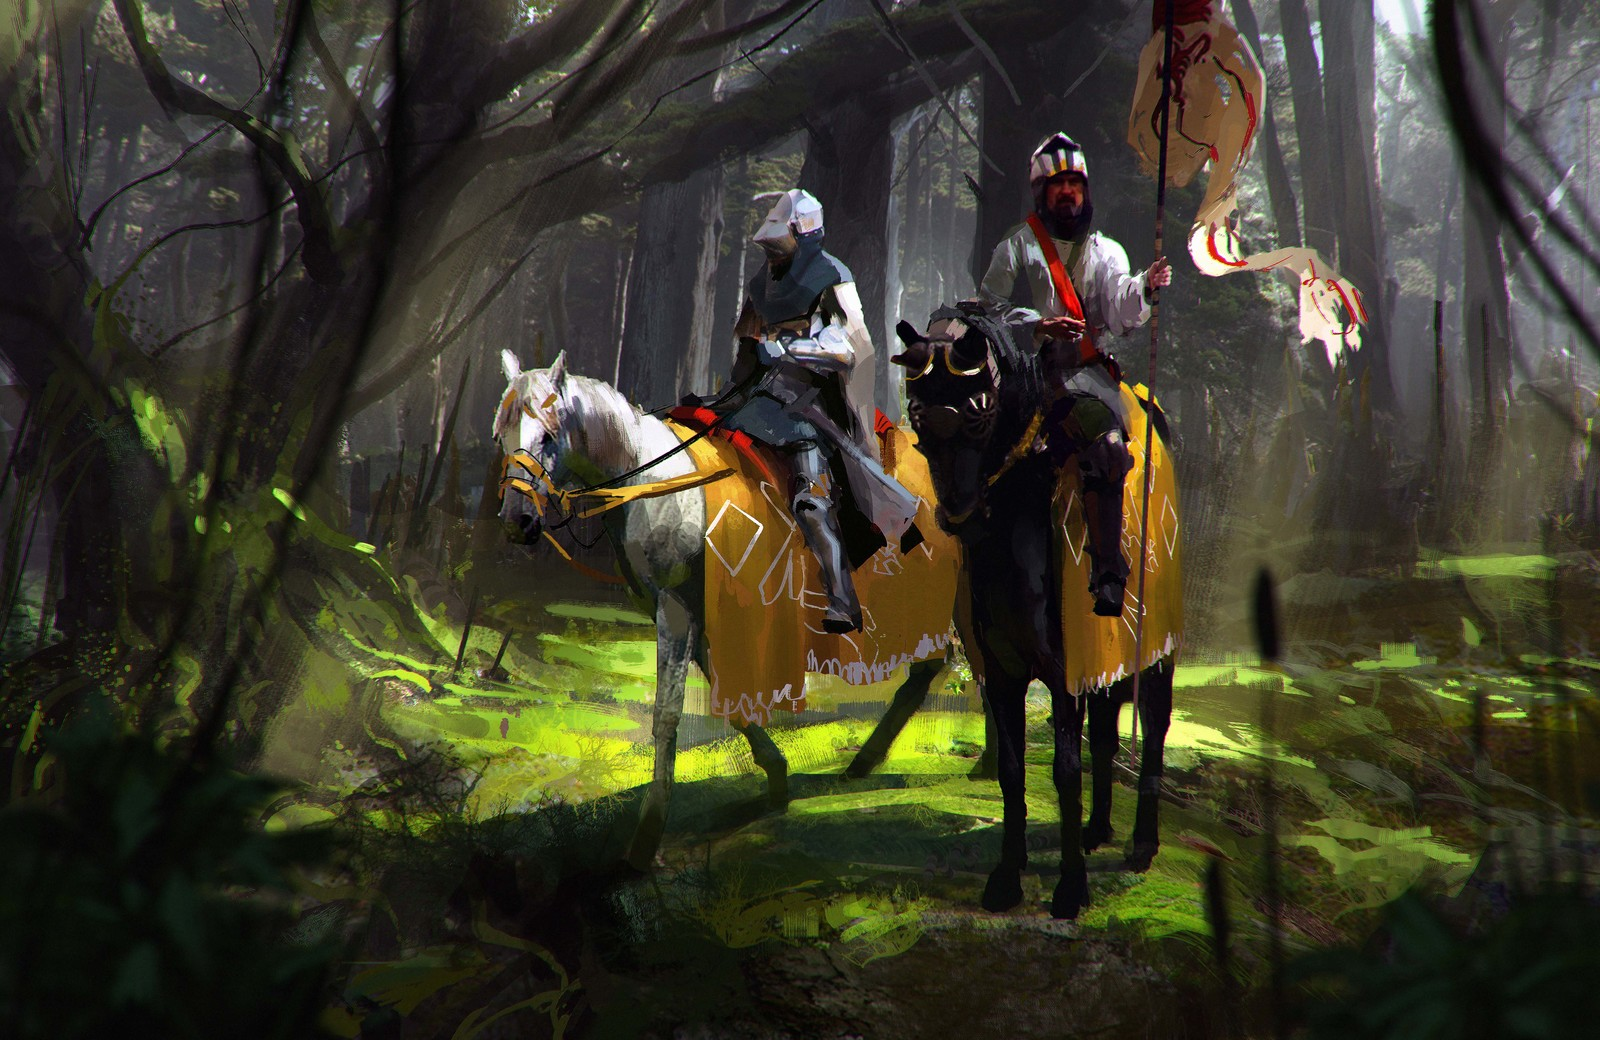 Forest Riders